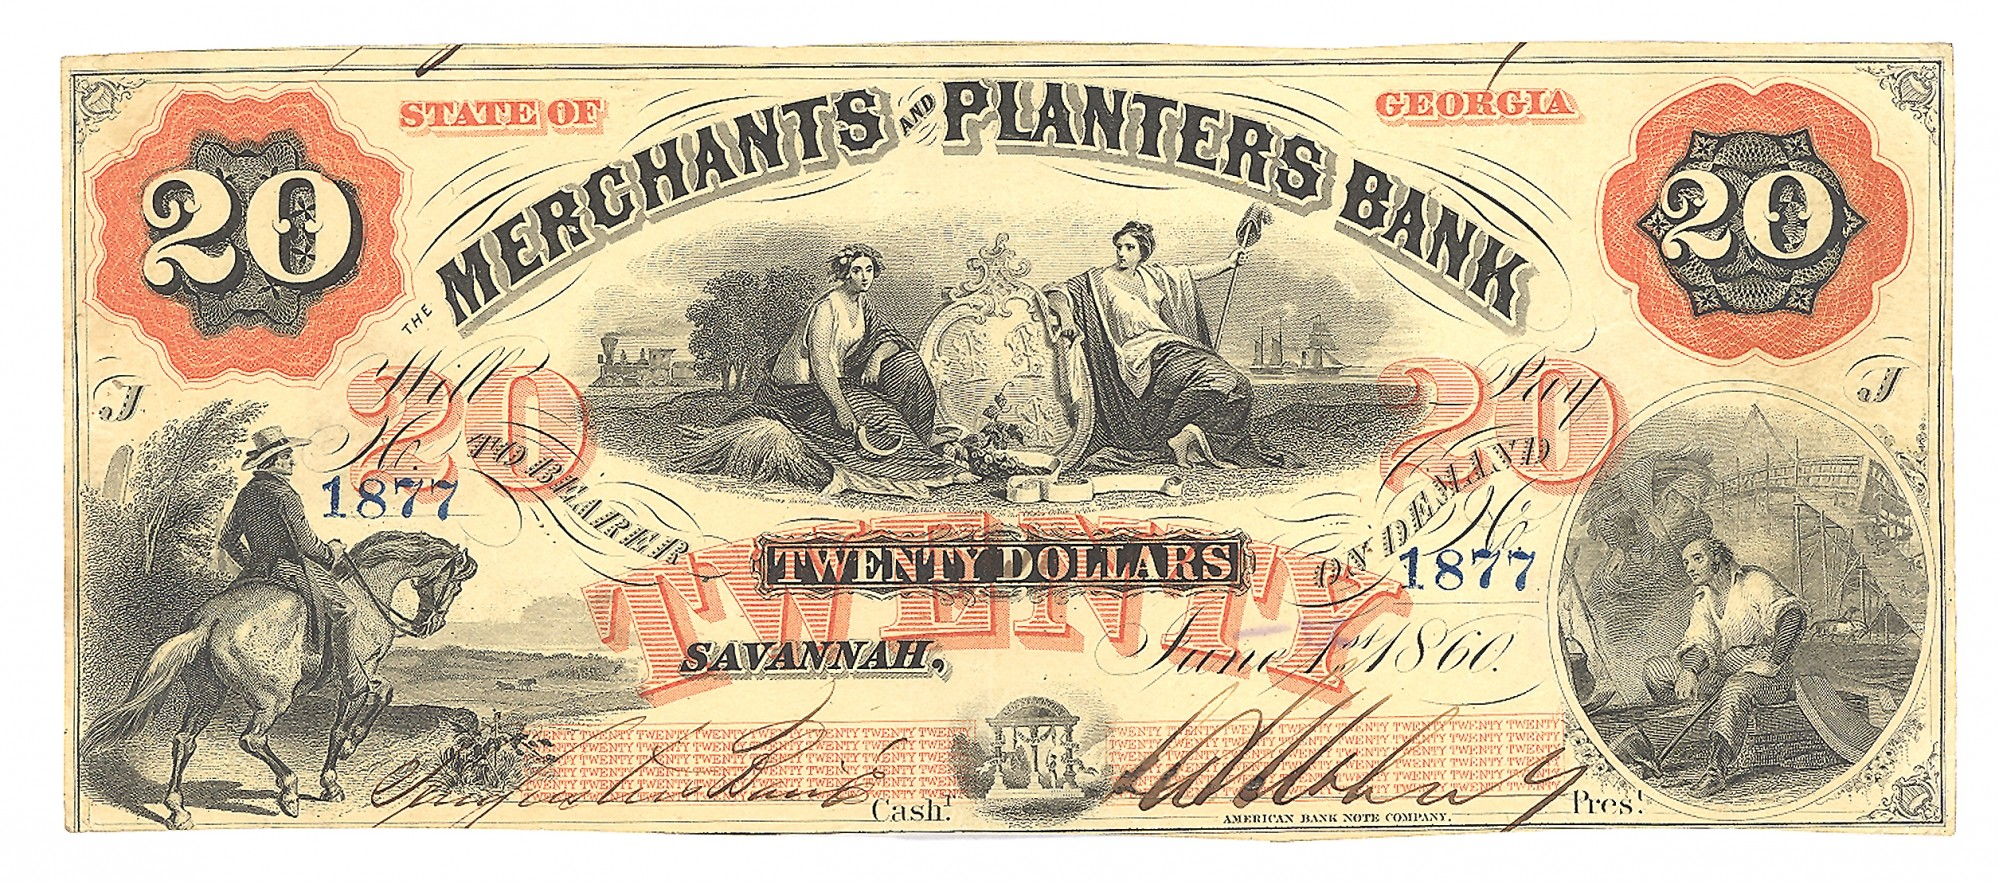 MERCHANTS AND PLANTERS BANK, SAVANNAH, GEORGIA, $20 NOTE